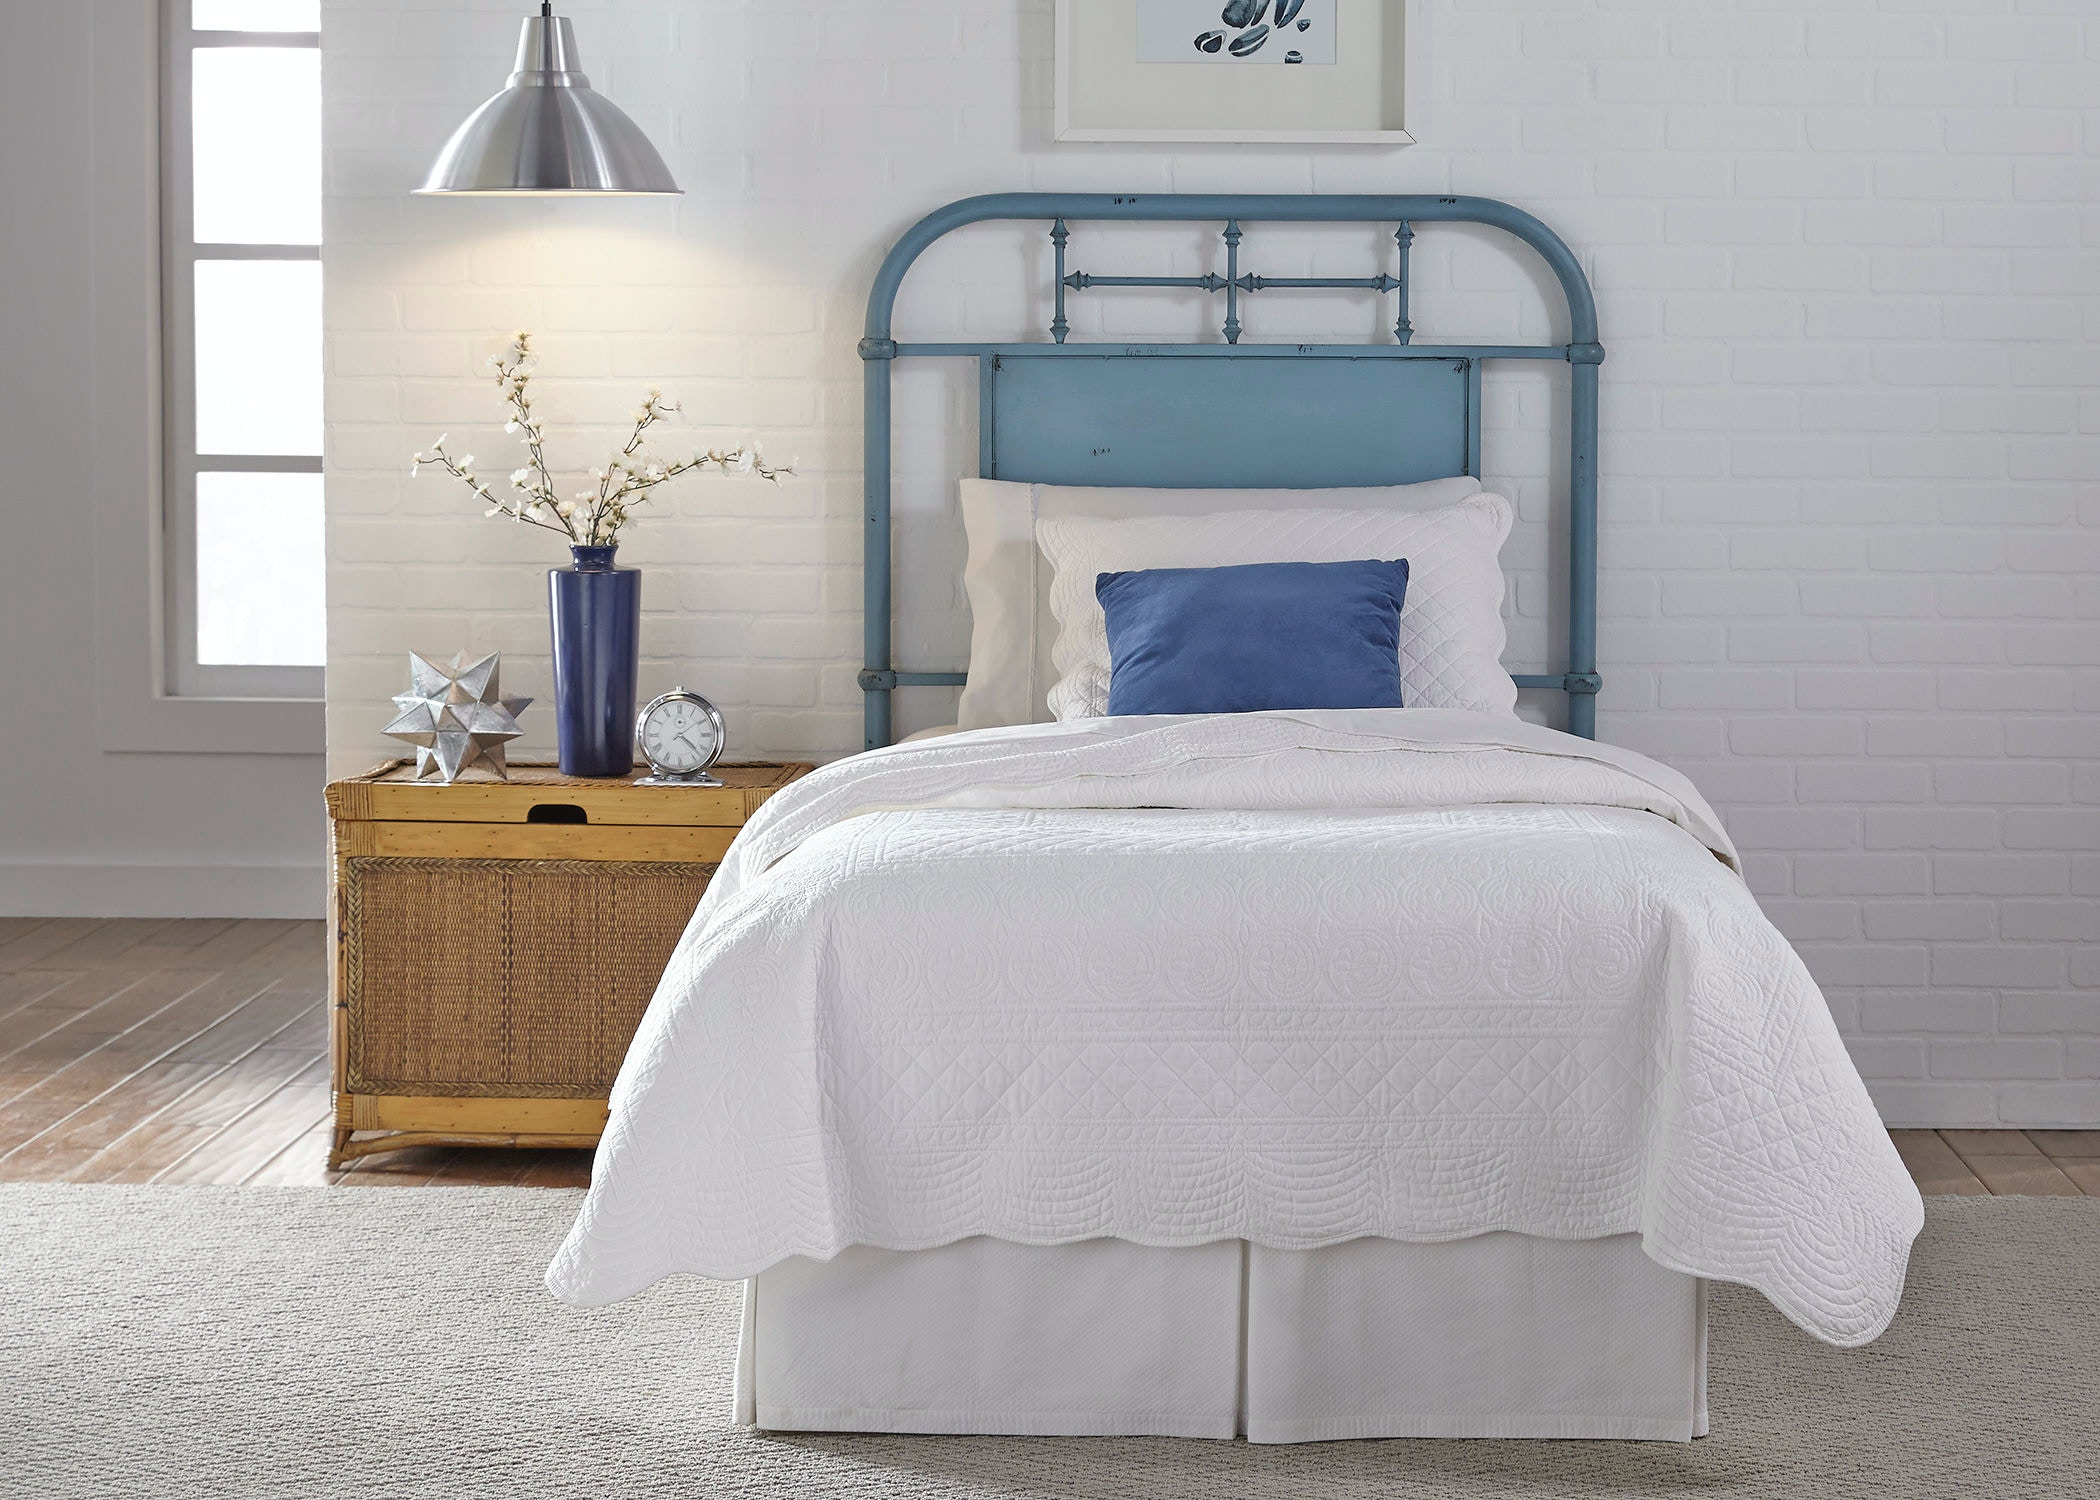 Liberty furniture youth twin metal headboard blue details classic vintage styling